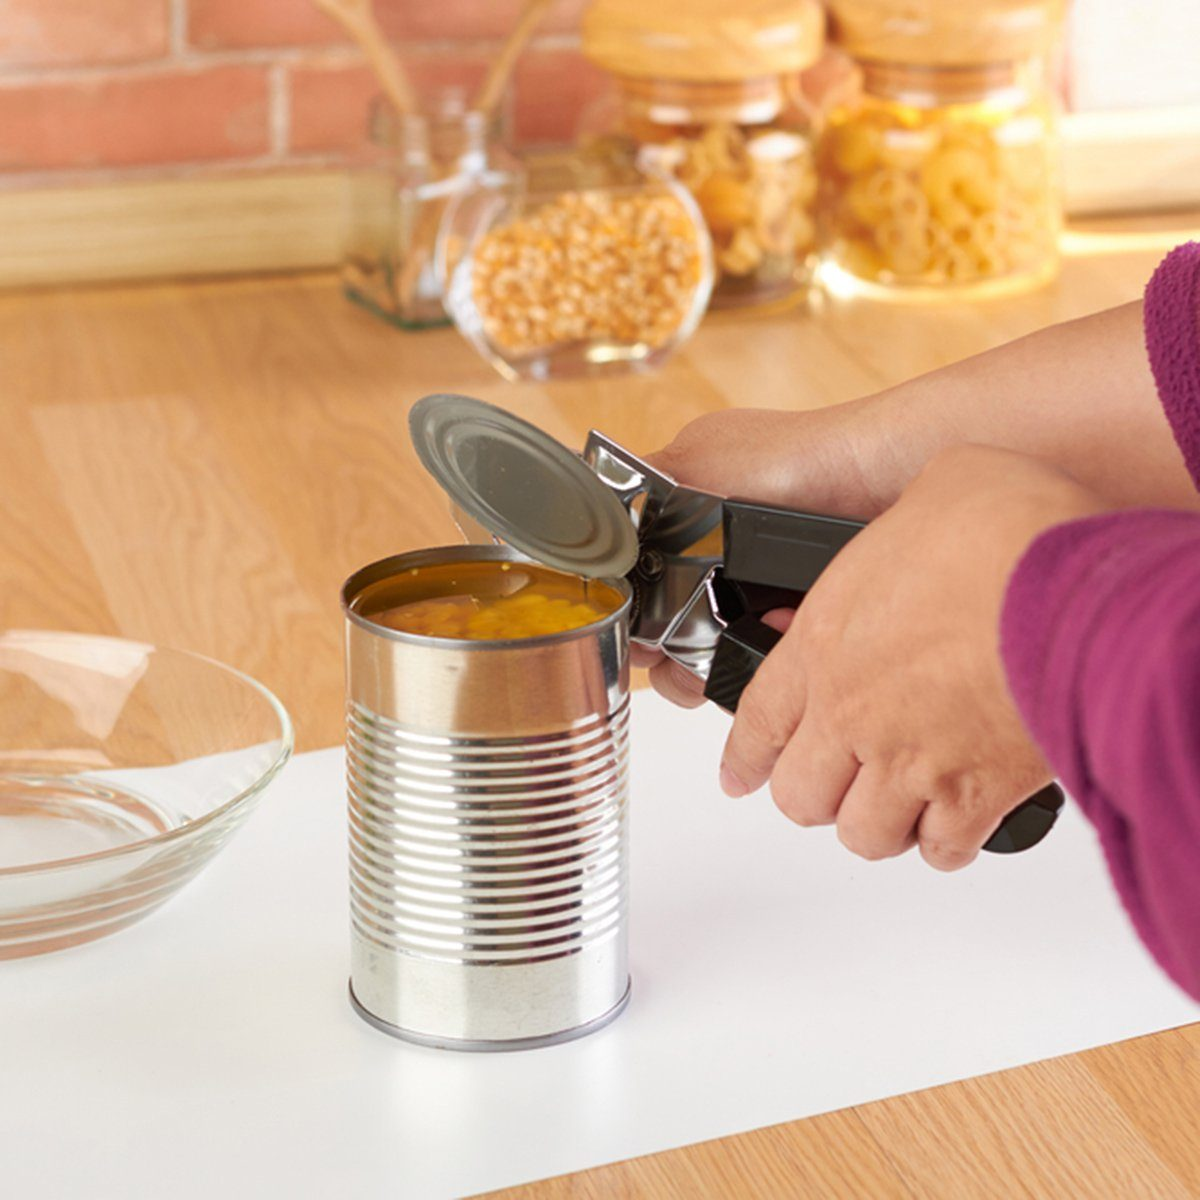 Woman opening a can of corn with can opener in the kitchen